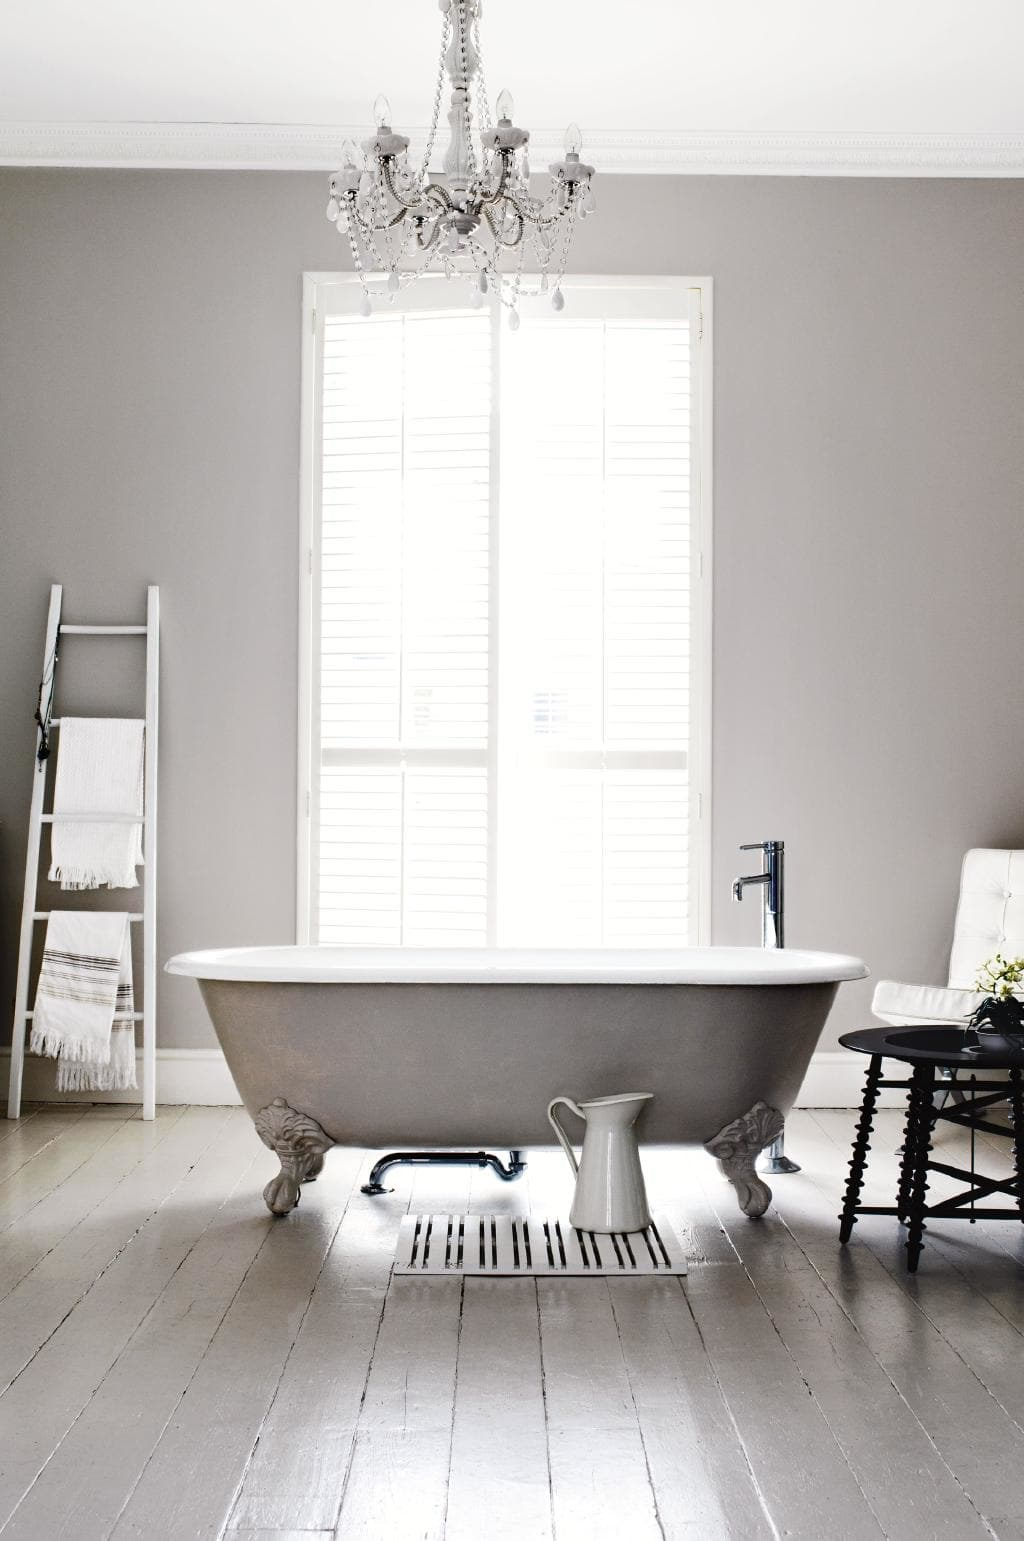 "Shabby chic with a country-style flair, this bathroom in a [stunning London home](https://www.homestolove.com.au/classic-beauty-stunning-london-home-18570|target=""_blank"") features a claw-footed tub screams elegance. *Photo: Amanda Prior / Styling: Kasha Harmer*"